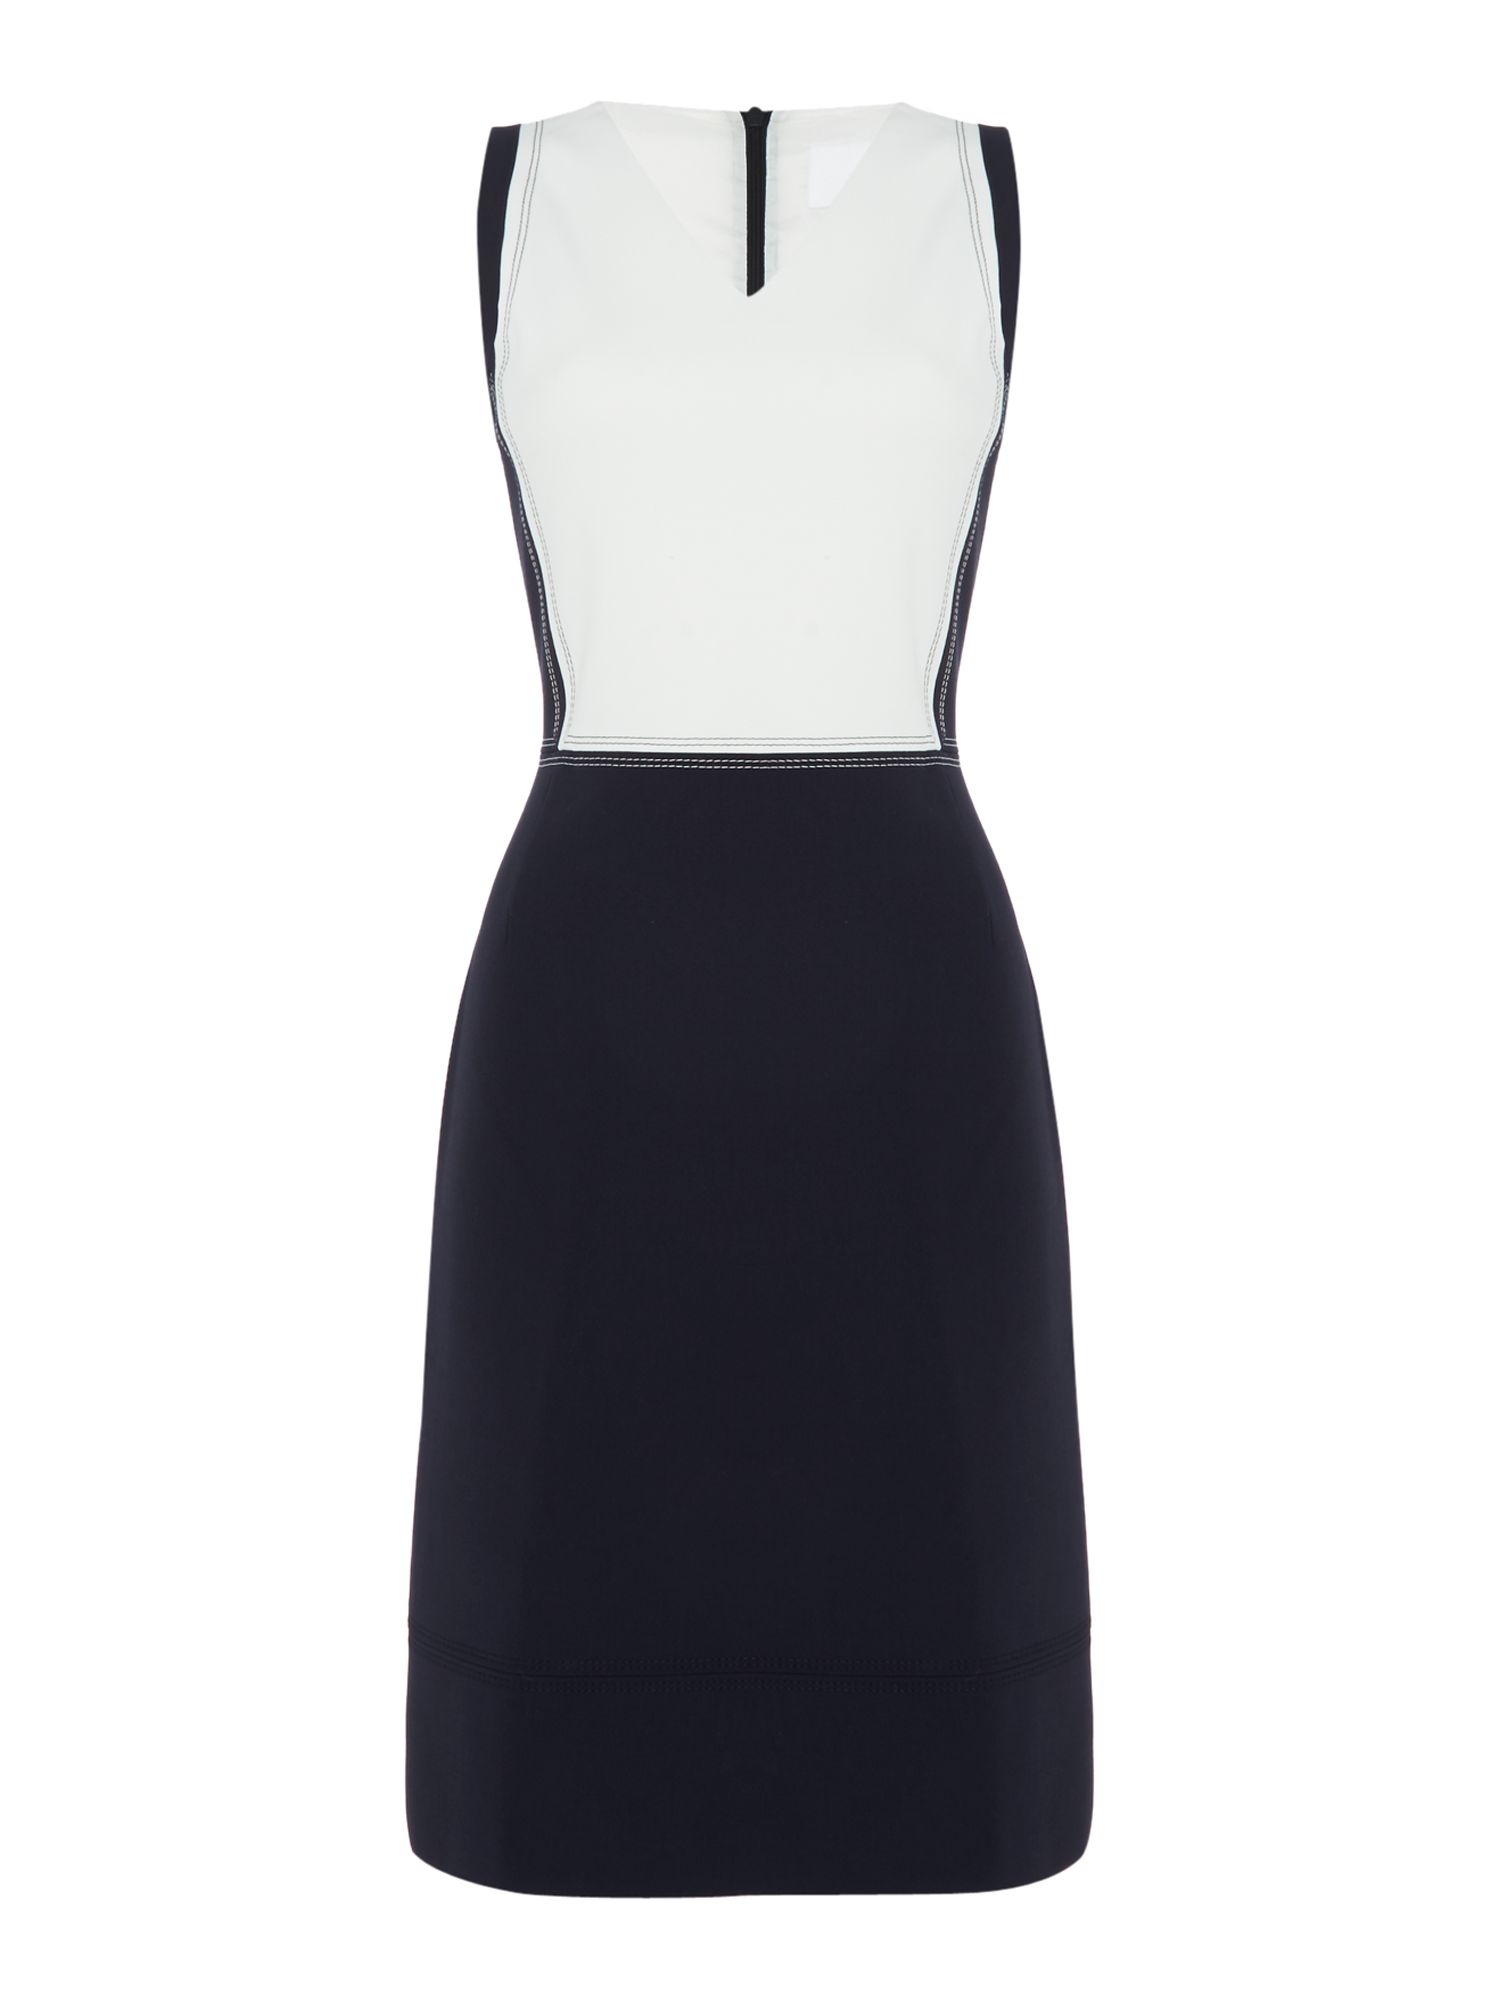 Hugo Boss Sleeveless dress with visible stitching detail, Blue